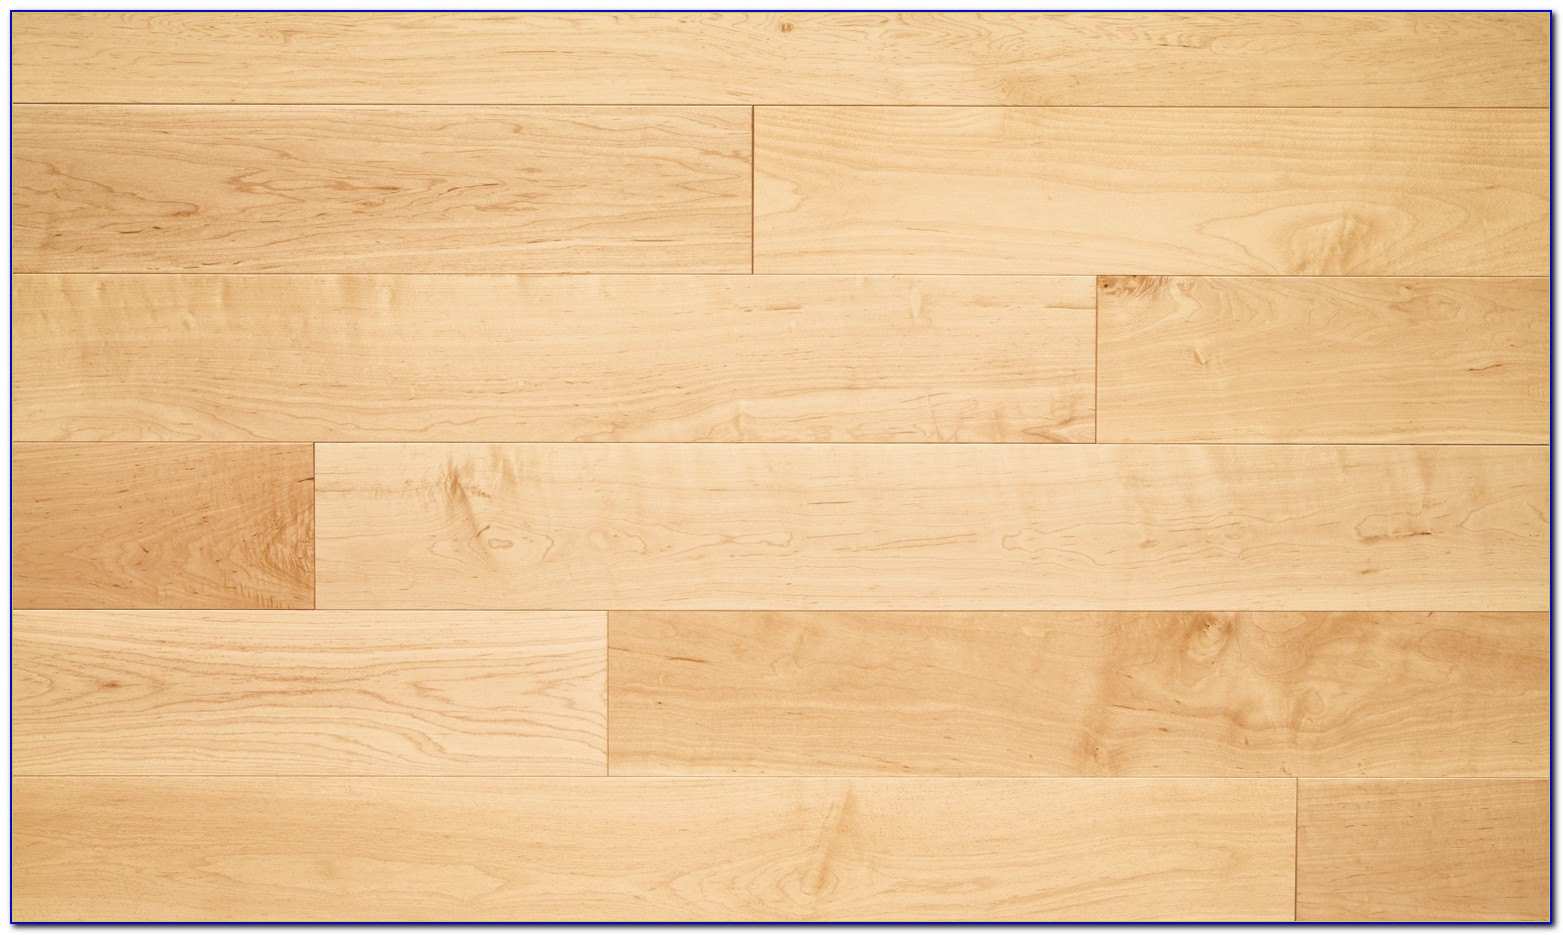 Mohawk Natural Maple Hardwood Flooring